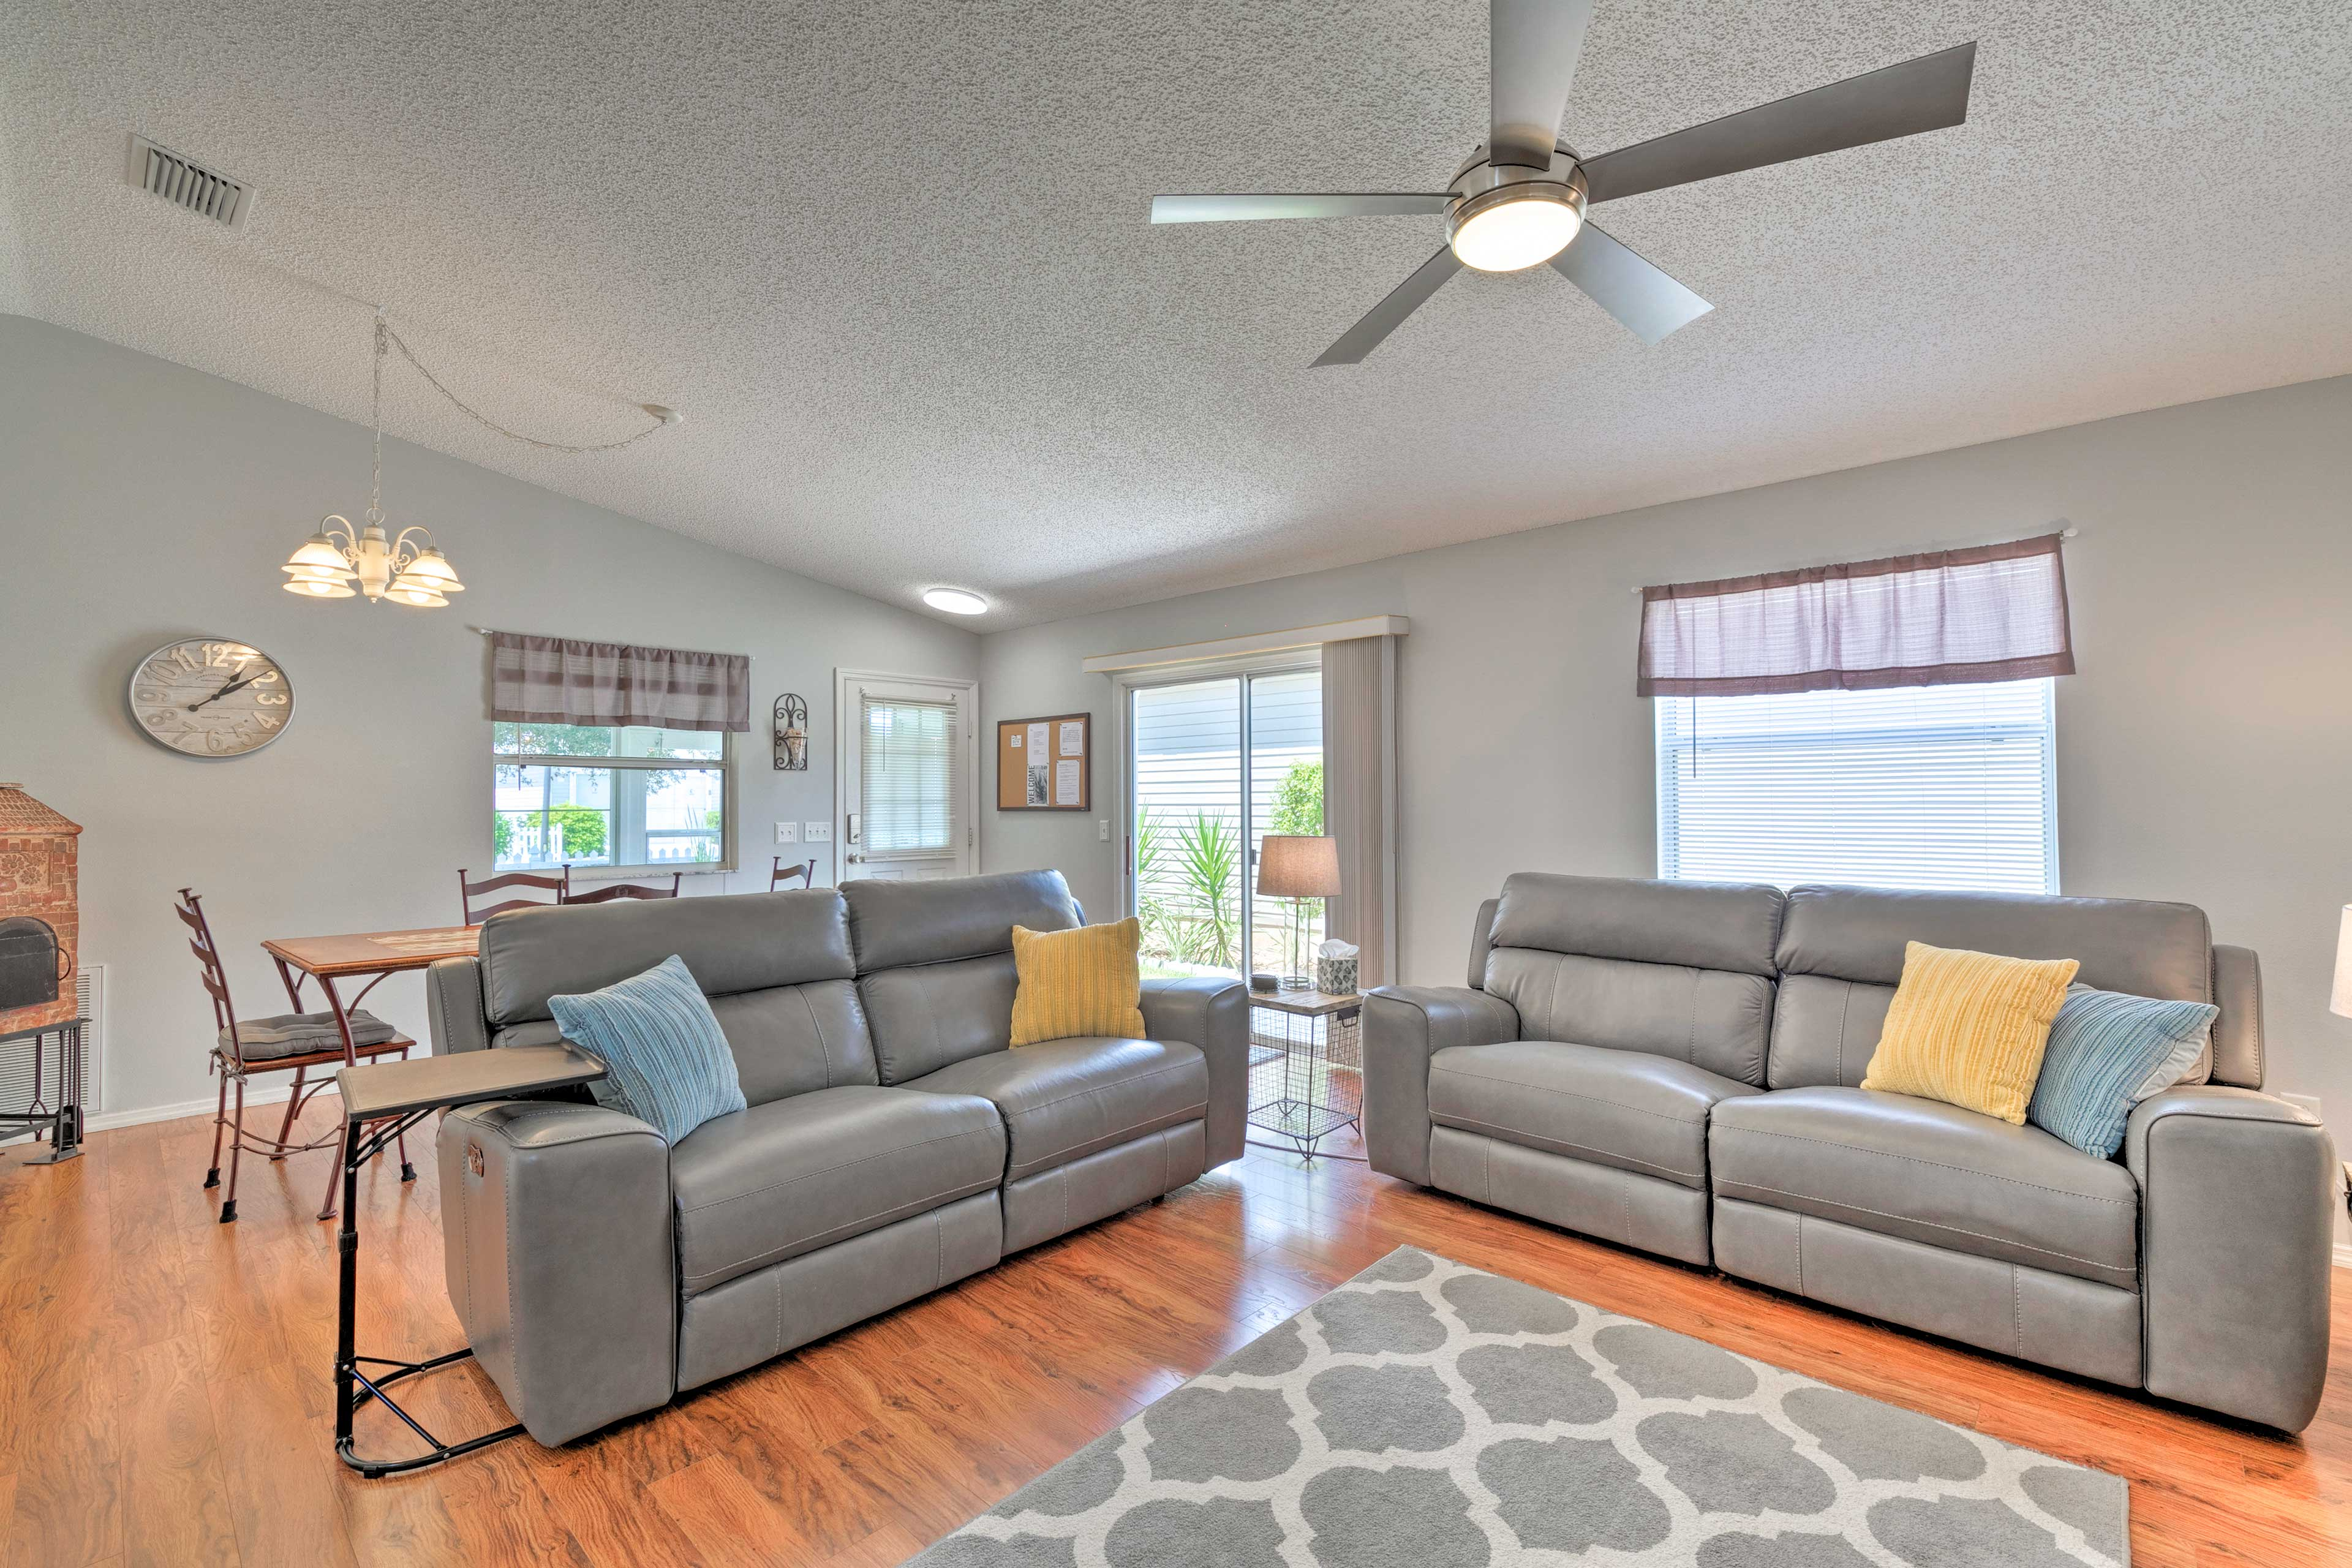 This home for 4 offers a newly renovated interior!